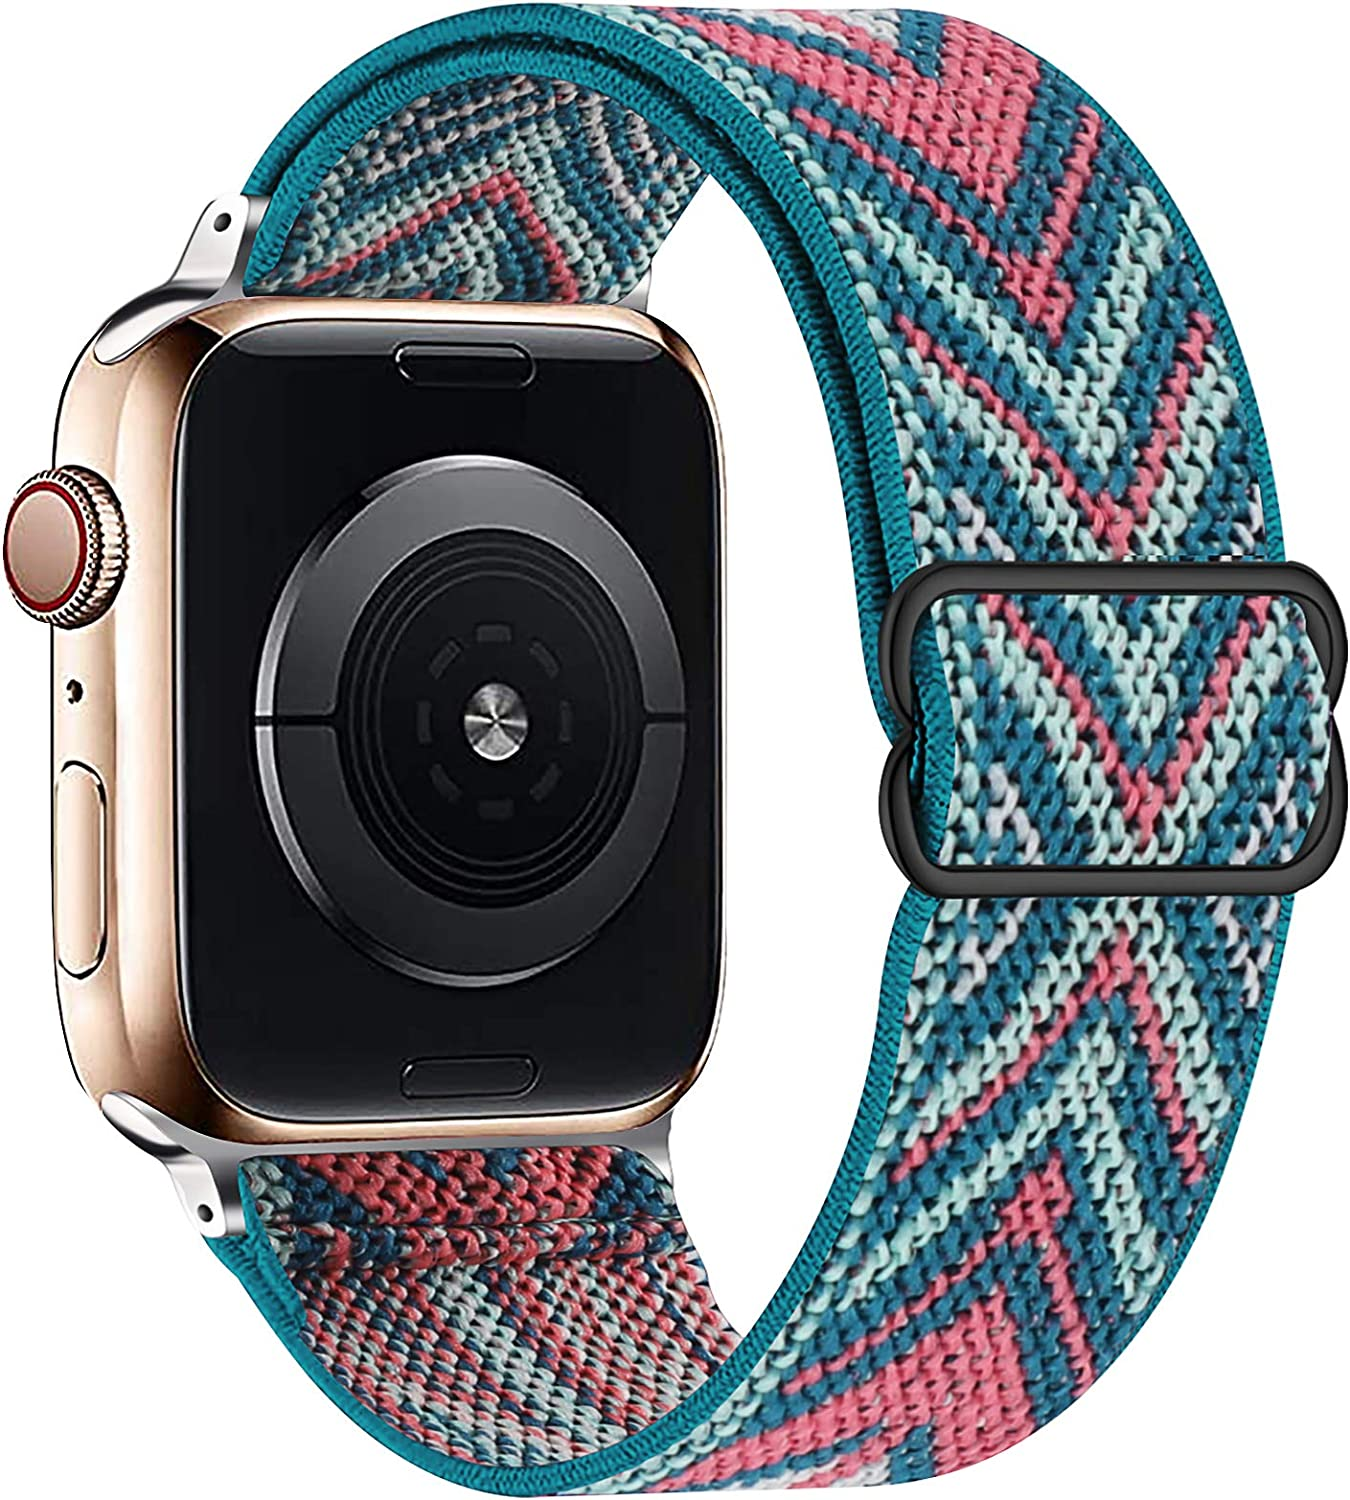 OHCBOOGIE Stretchy Solo Loop Strap Compatible with Apple Watch Bands 38mm 40mm 42mm 44mm ,Adjustable Stretch Braided Sport Elastics Weave Nylon Women Men Wristband Compatible with iWatch Series 6/5/4/3/2/1 SE,Green Arrow,38/40mm